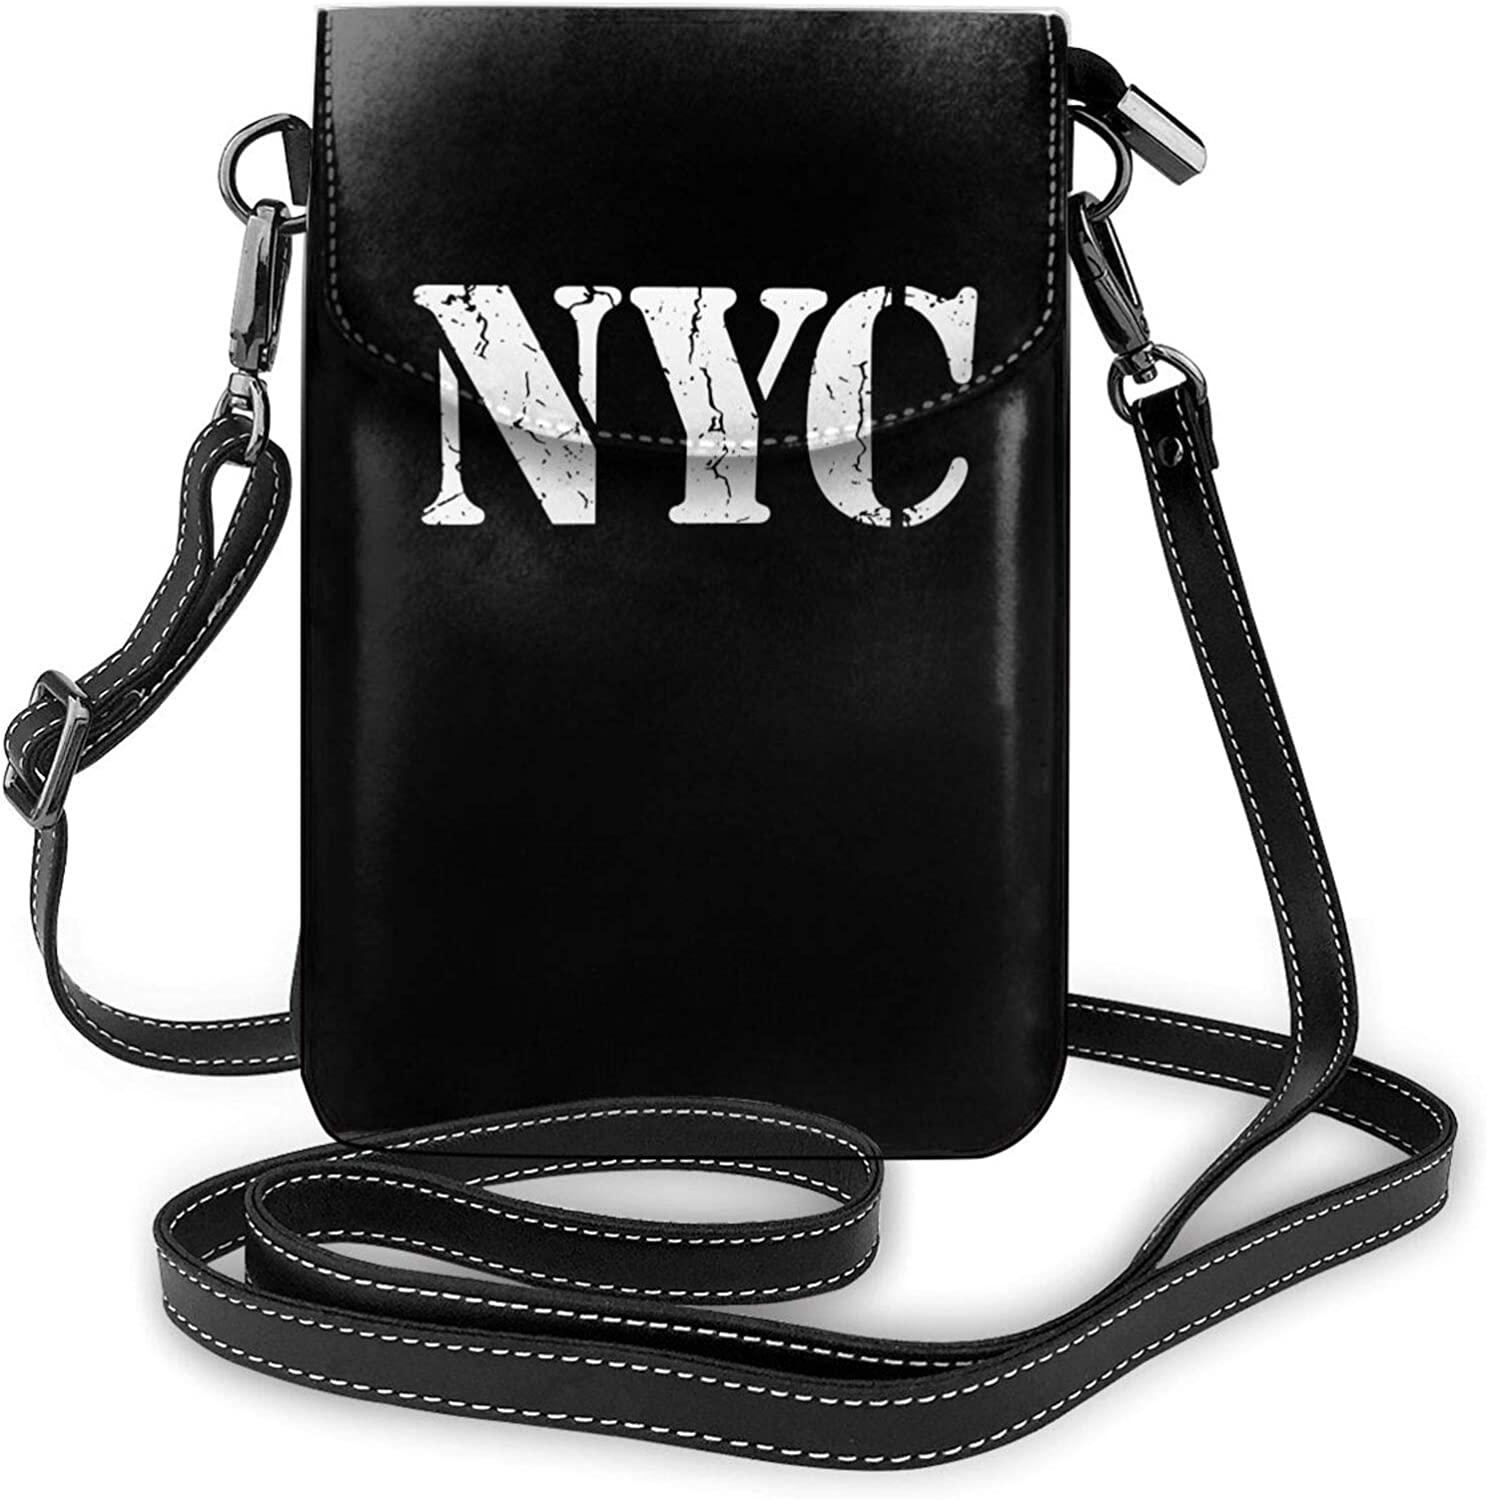 PLHDHESE Los Angeles Mall NYC Logo Women's Clearance SALE Limited time Leather Phone Cell Crossbo Small Purse